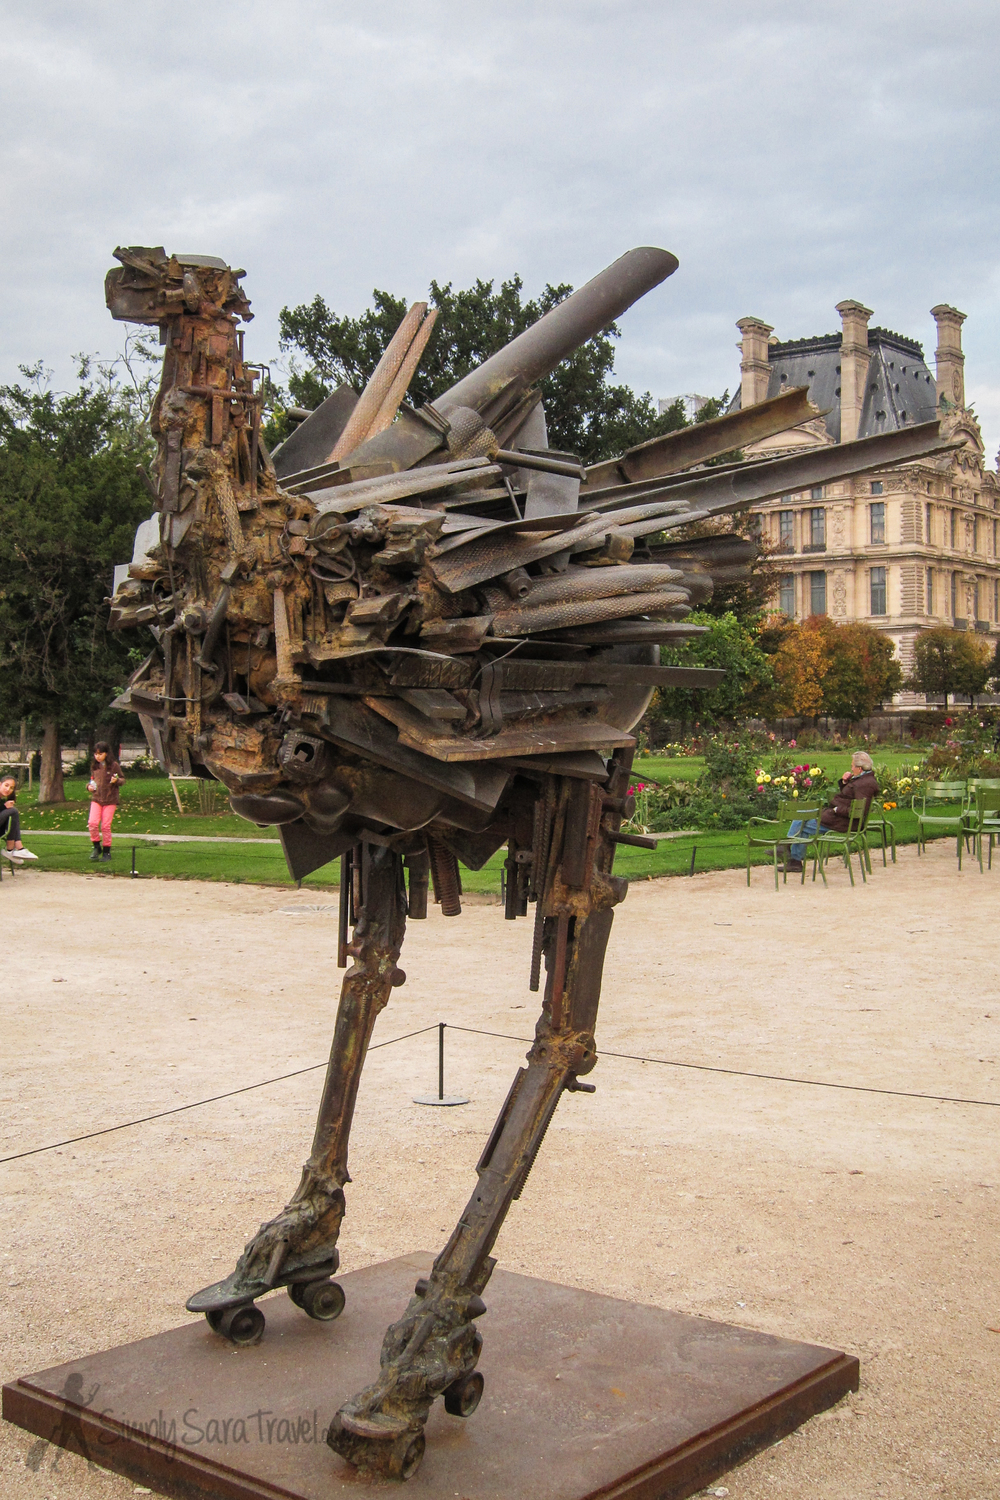 """Fanny Fanny,"" in the Jardin des Tuileries - by César, whose grave I visited this year during La Toussaint"